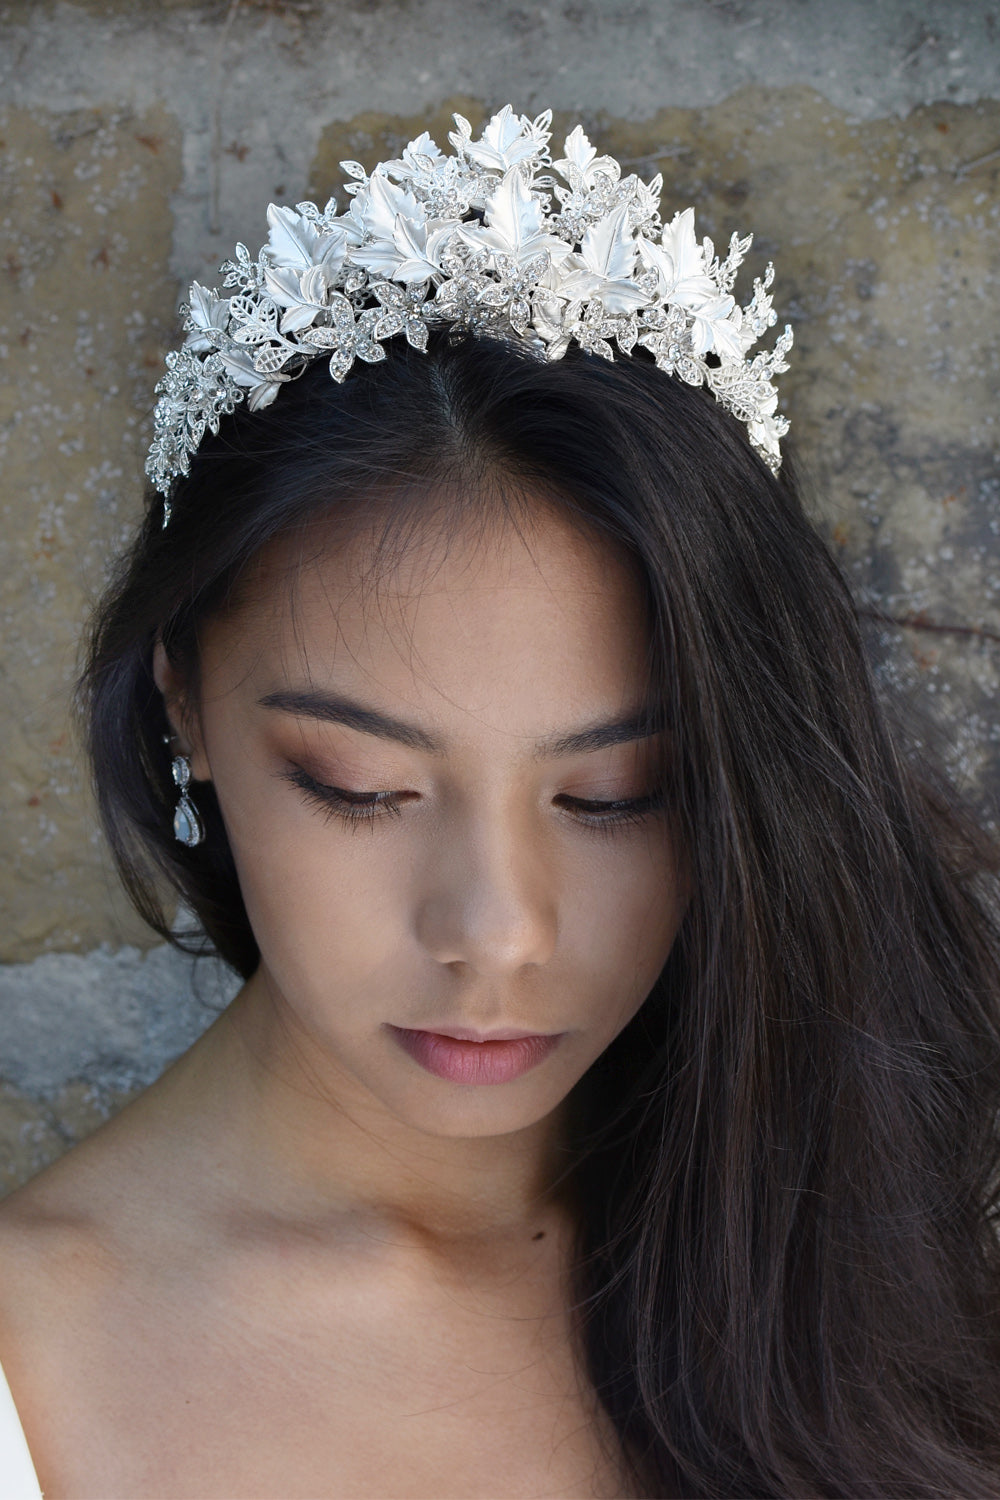 A black haired model wears a Bridal Crown of Silver leaves with a background of a stone wall